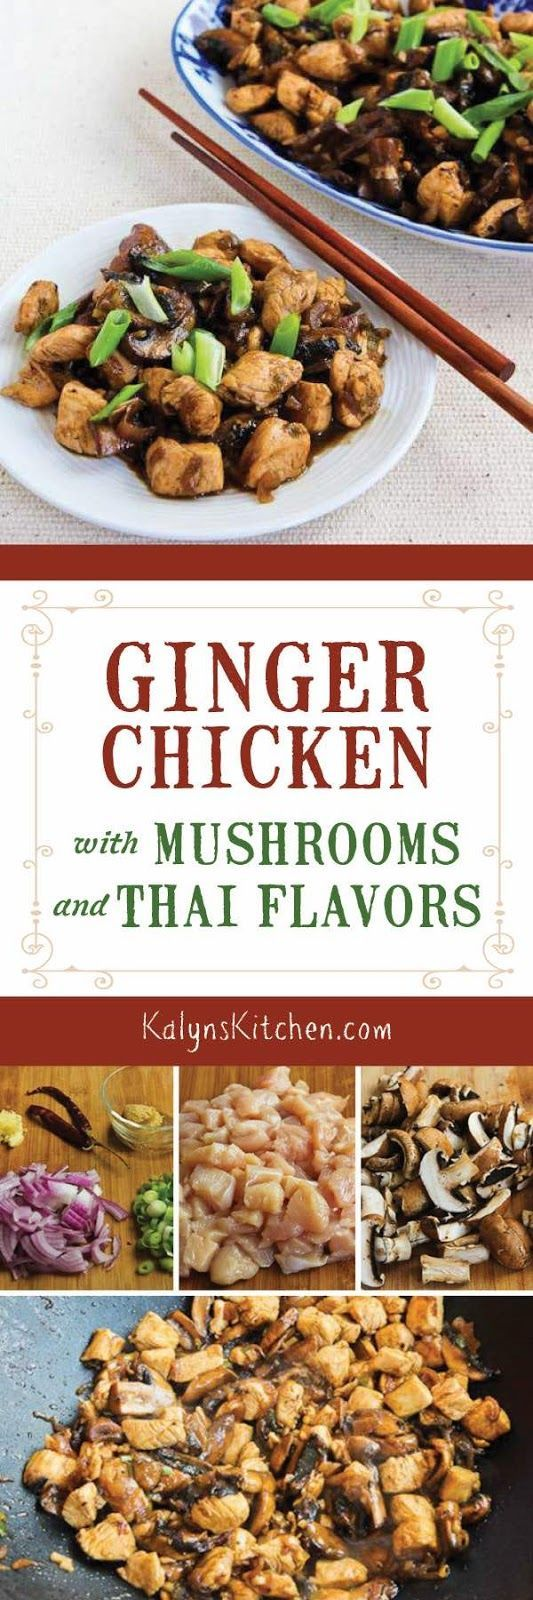 Mark Bittman's Ginger Chicken with Mushrooms and Thai Flavors is a chicken stir-fry that's easy, tasty, and healthy! [from www.kalynskitchen.com]